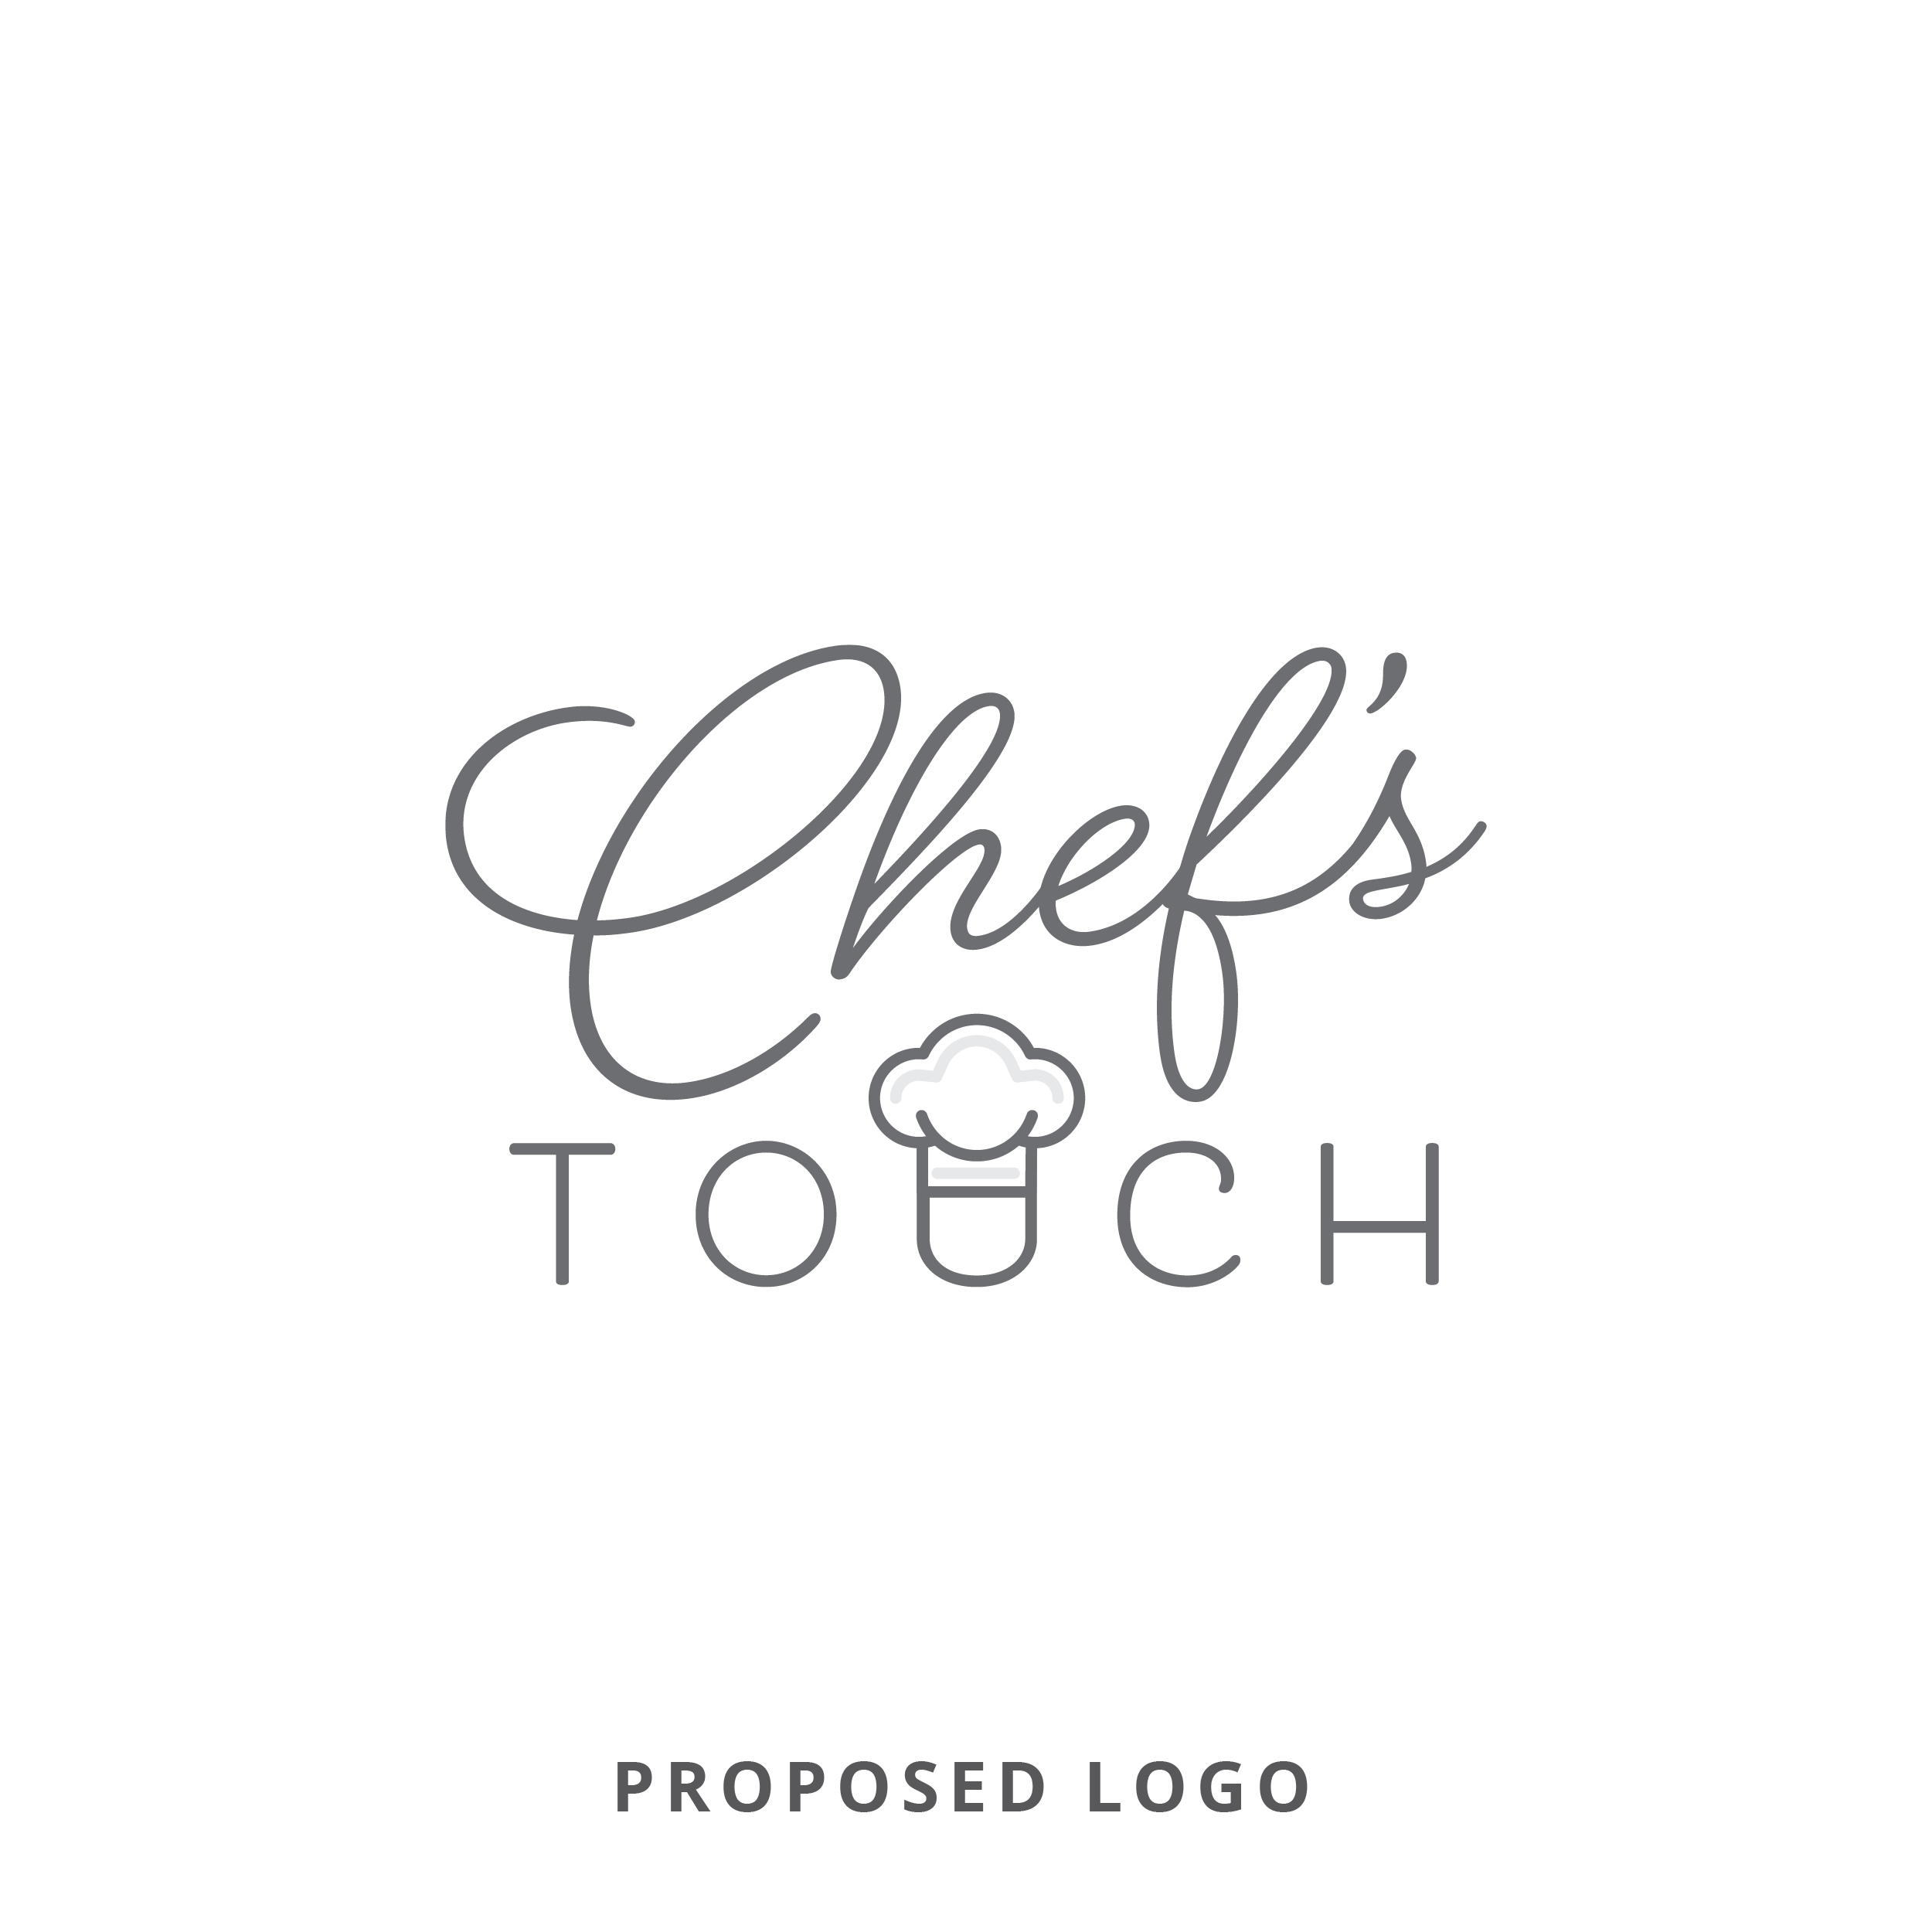 Chef's Touch Proposed Logo